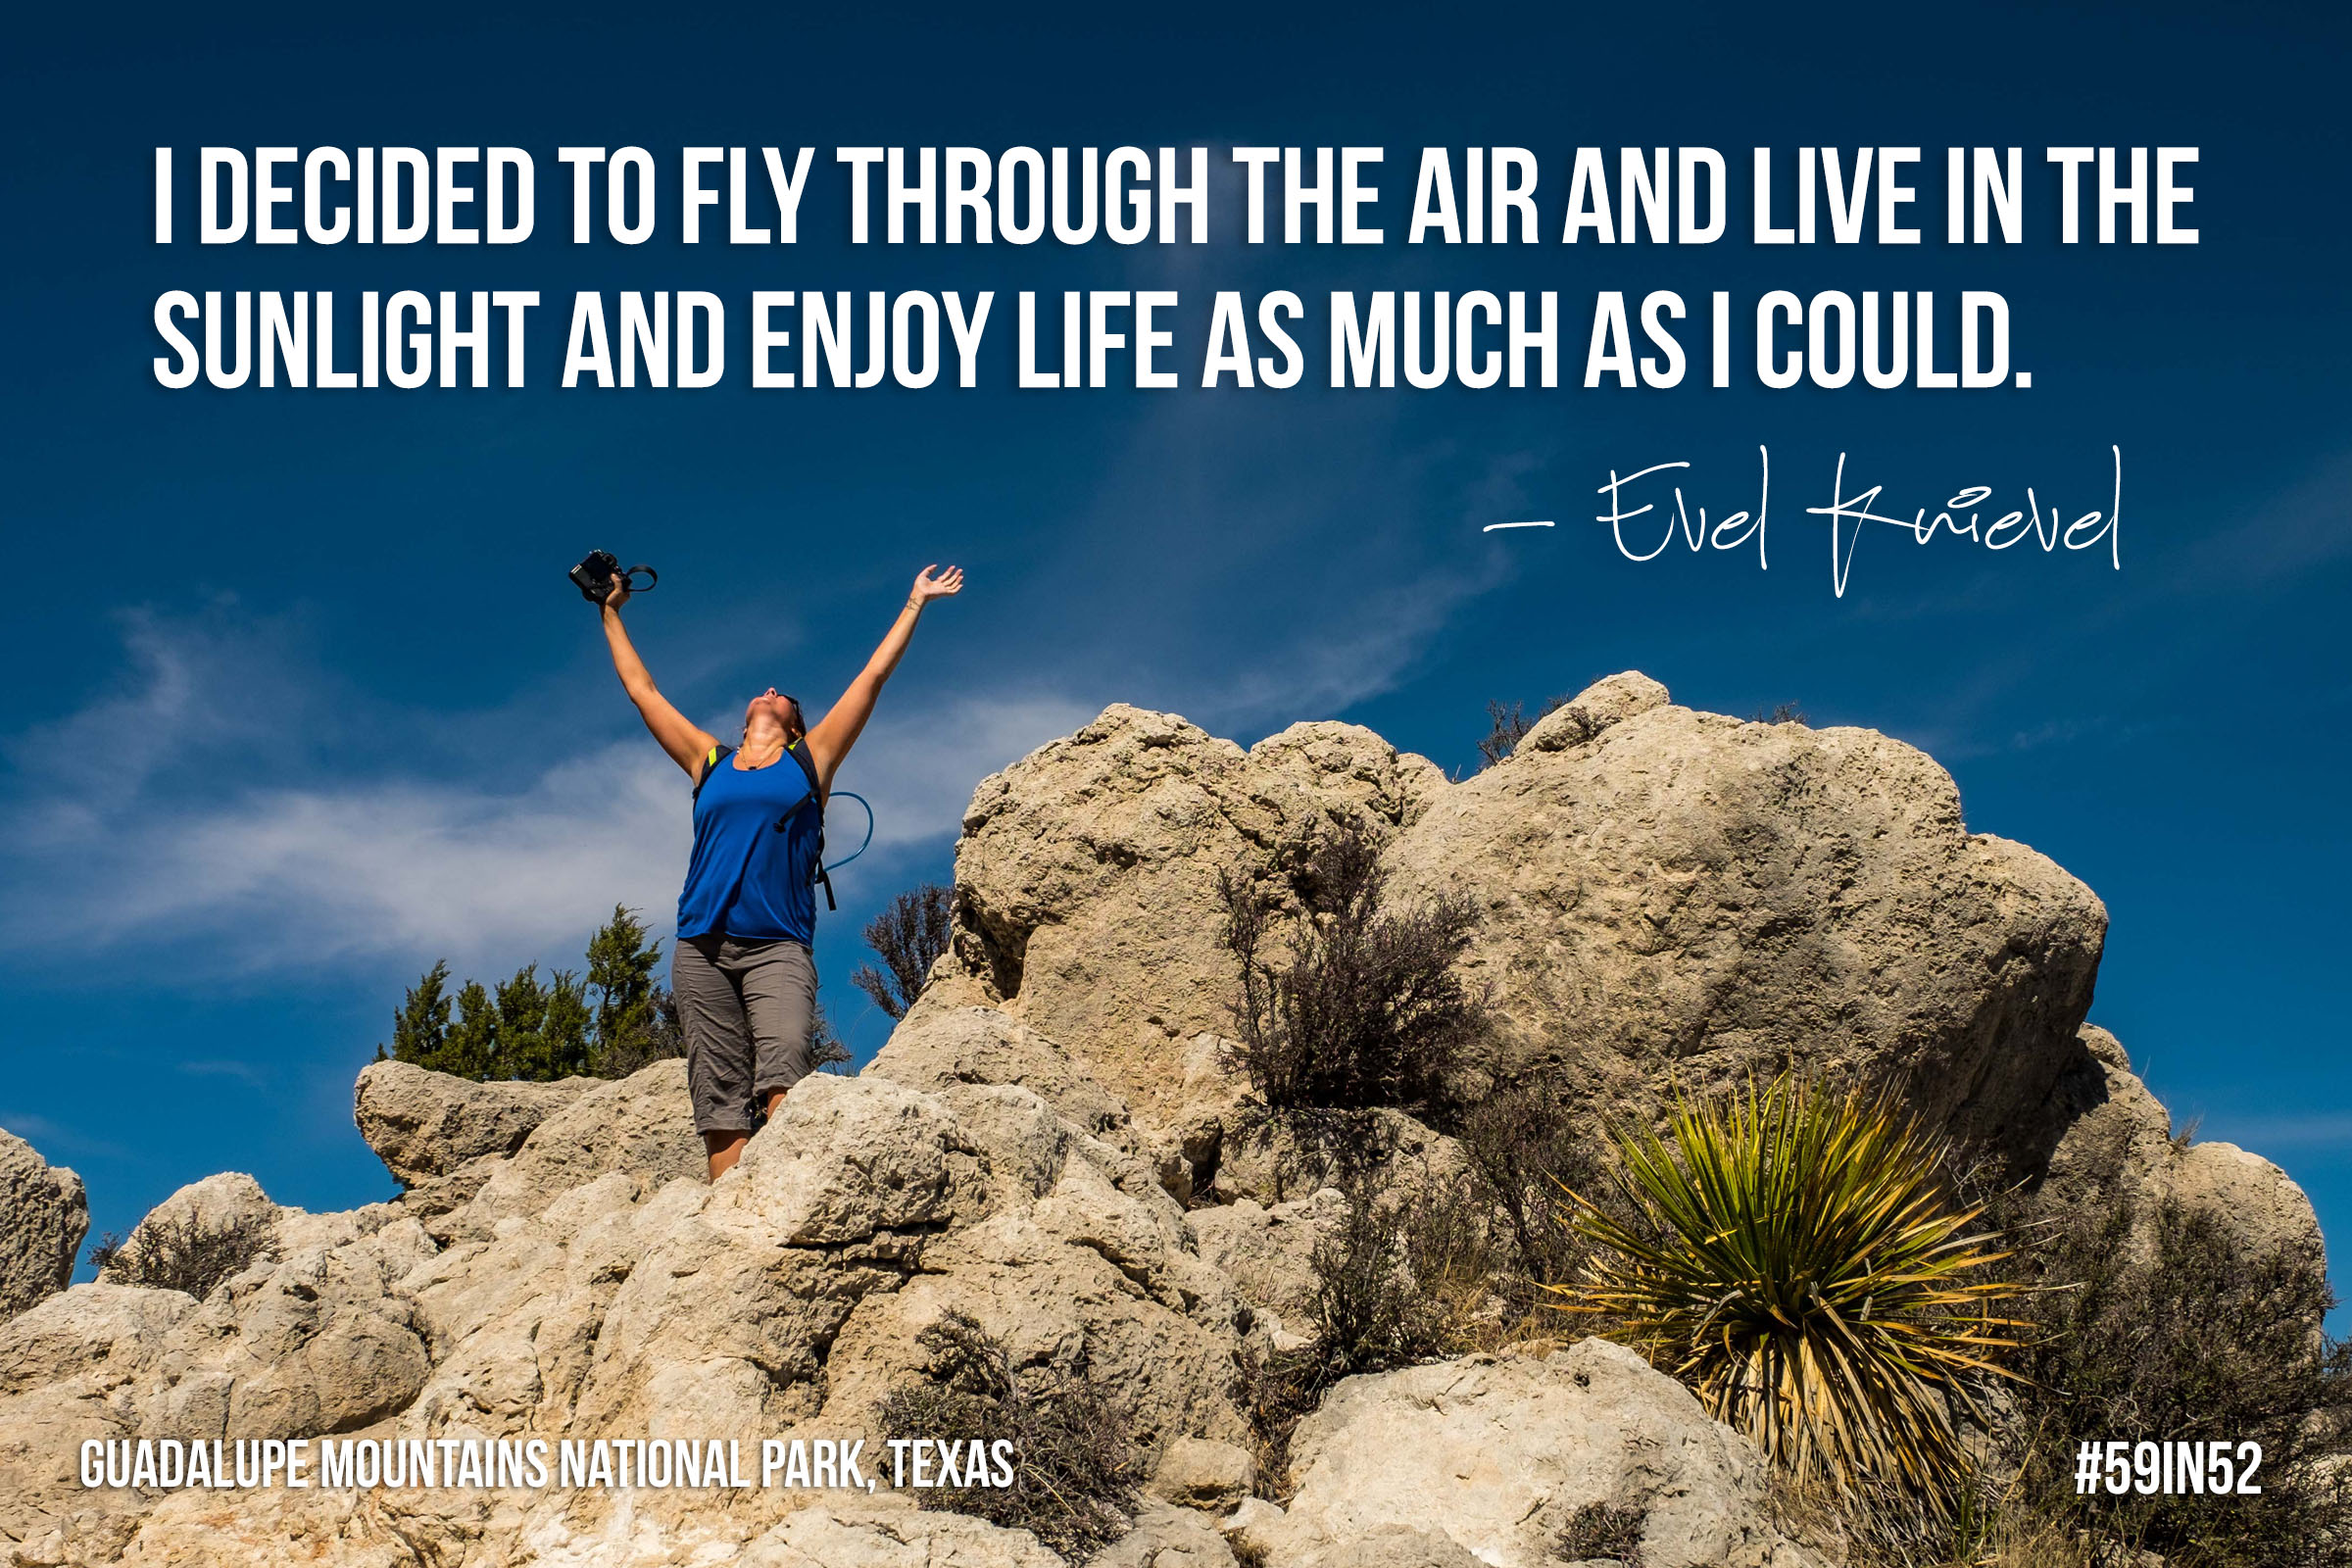 """I decided to fly through the air and live in the sunlight and enjoy life as much as I can."" - Evel Knievel"